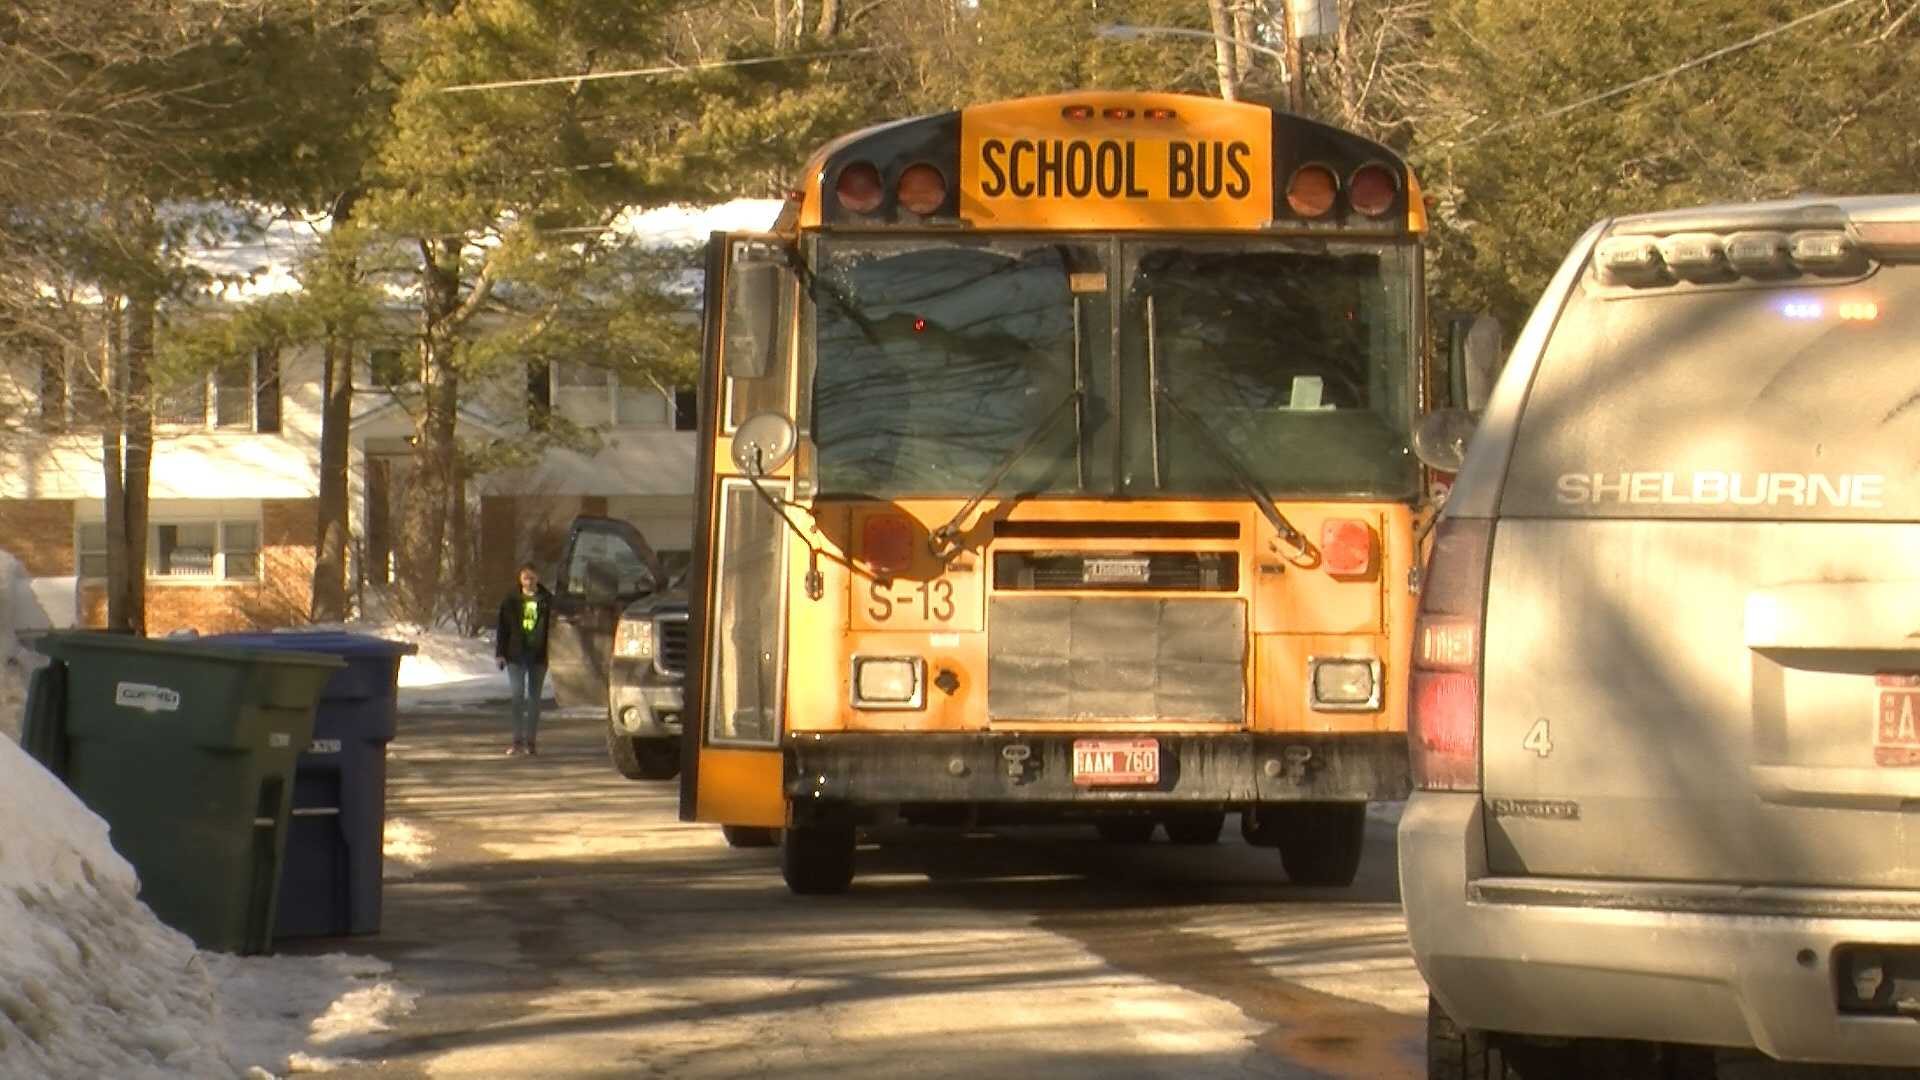 Students evacuated from school bus - img